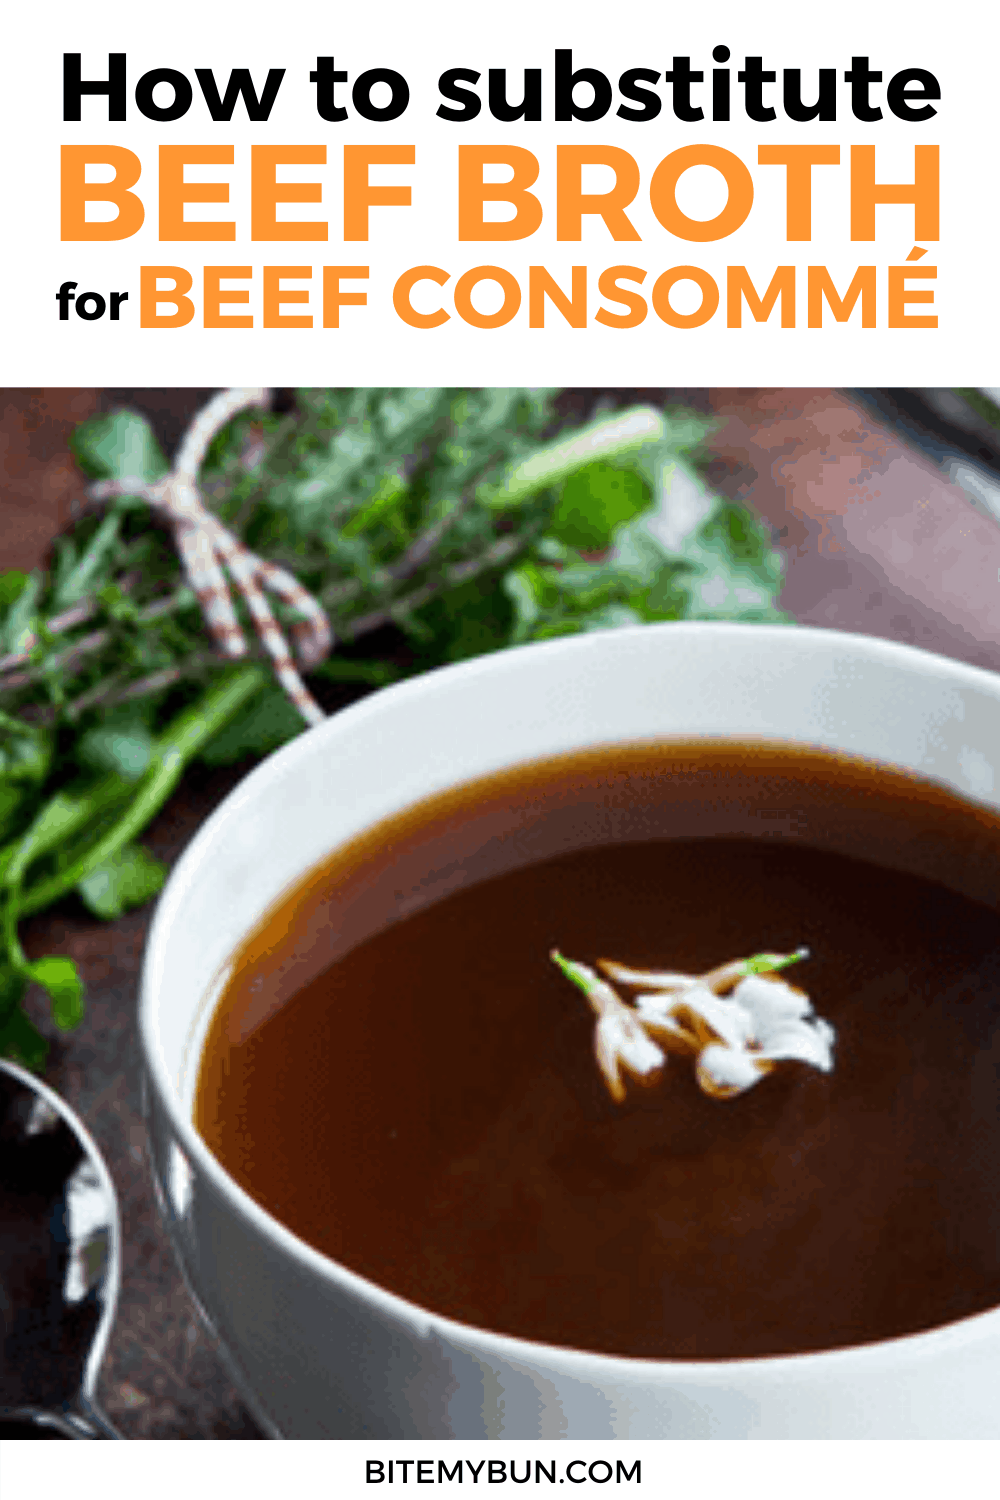 How to substitue Beef Broth for Consomme